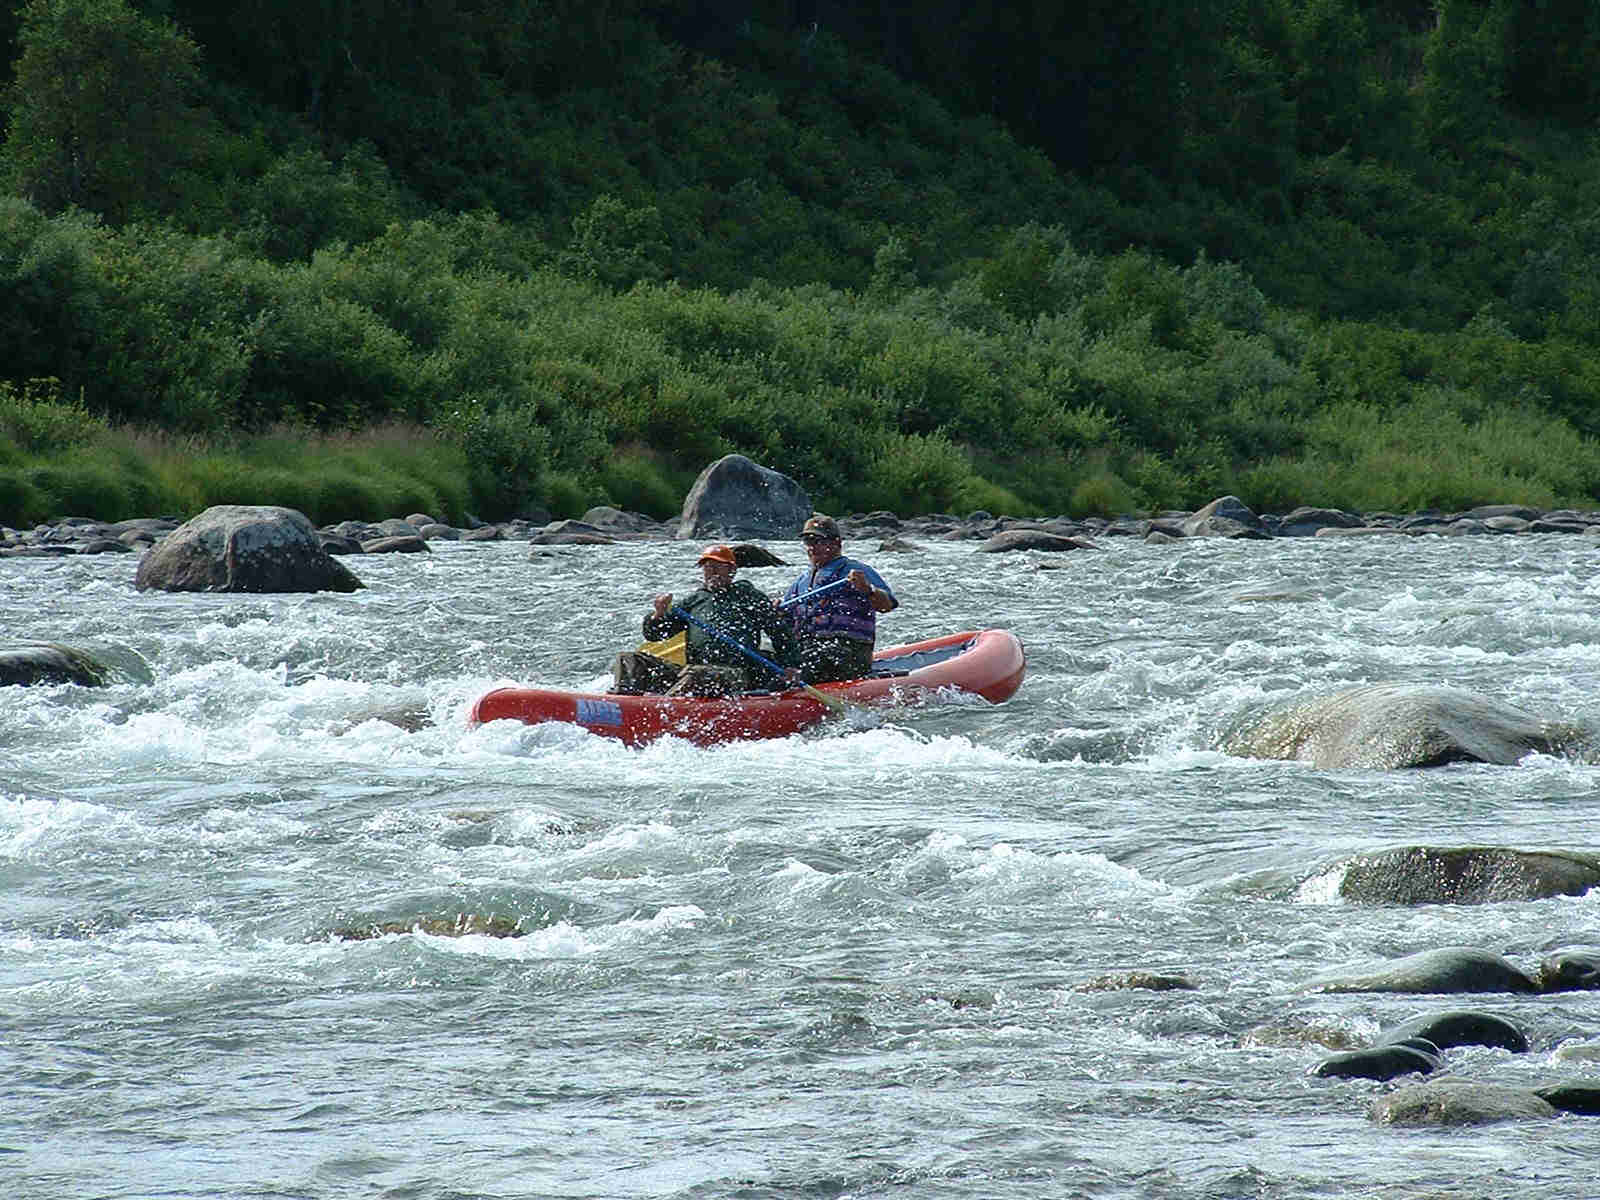 Lots of fun whitewater action on Lake Creek - AIRE TRAVELER CANOE - ALASKA RAFT CONNECTION